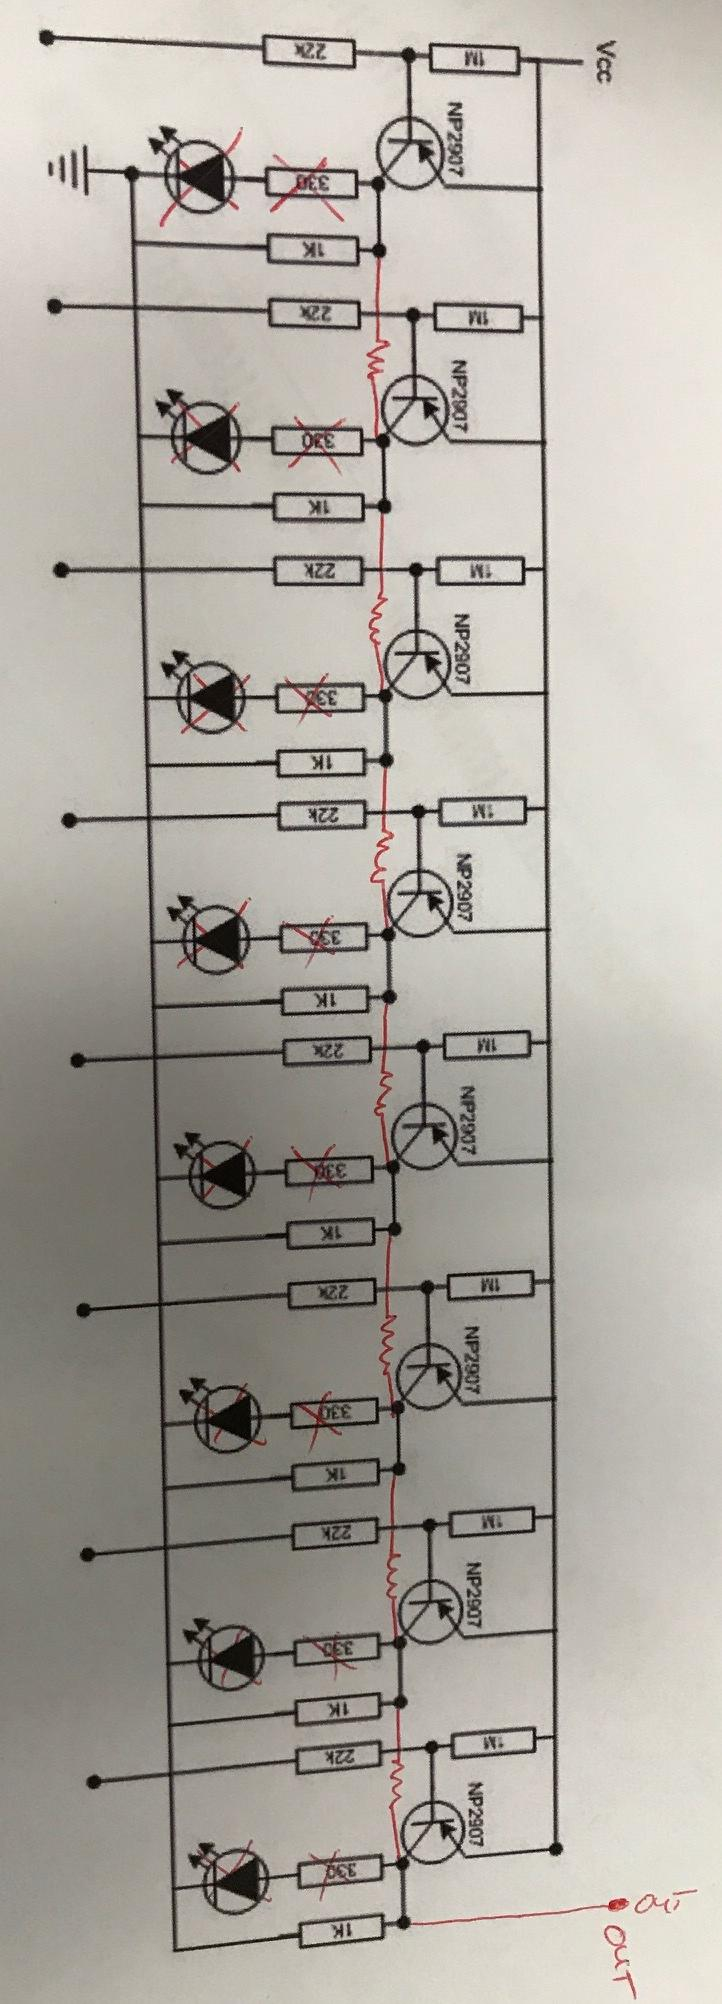 Resistors In A Voltage Divider Circuit To Provide Variable Resistance